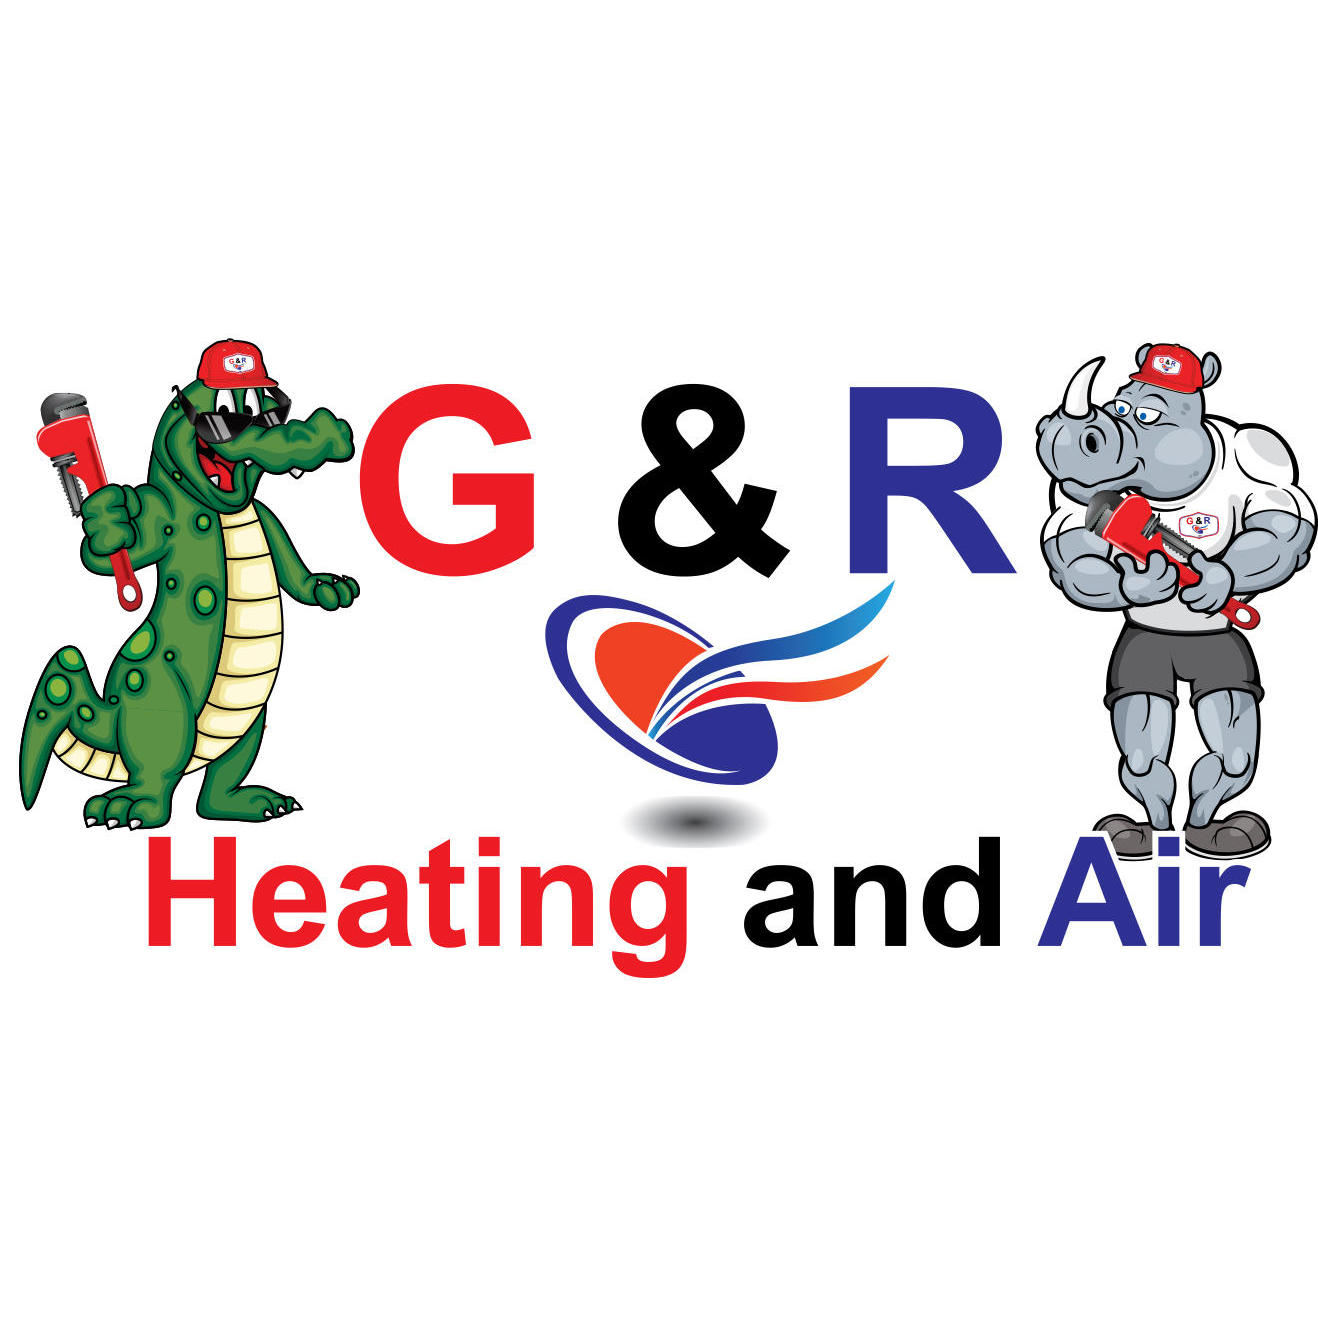 G & R Heating and Air image 4